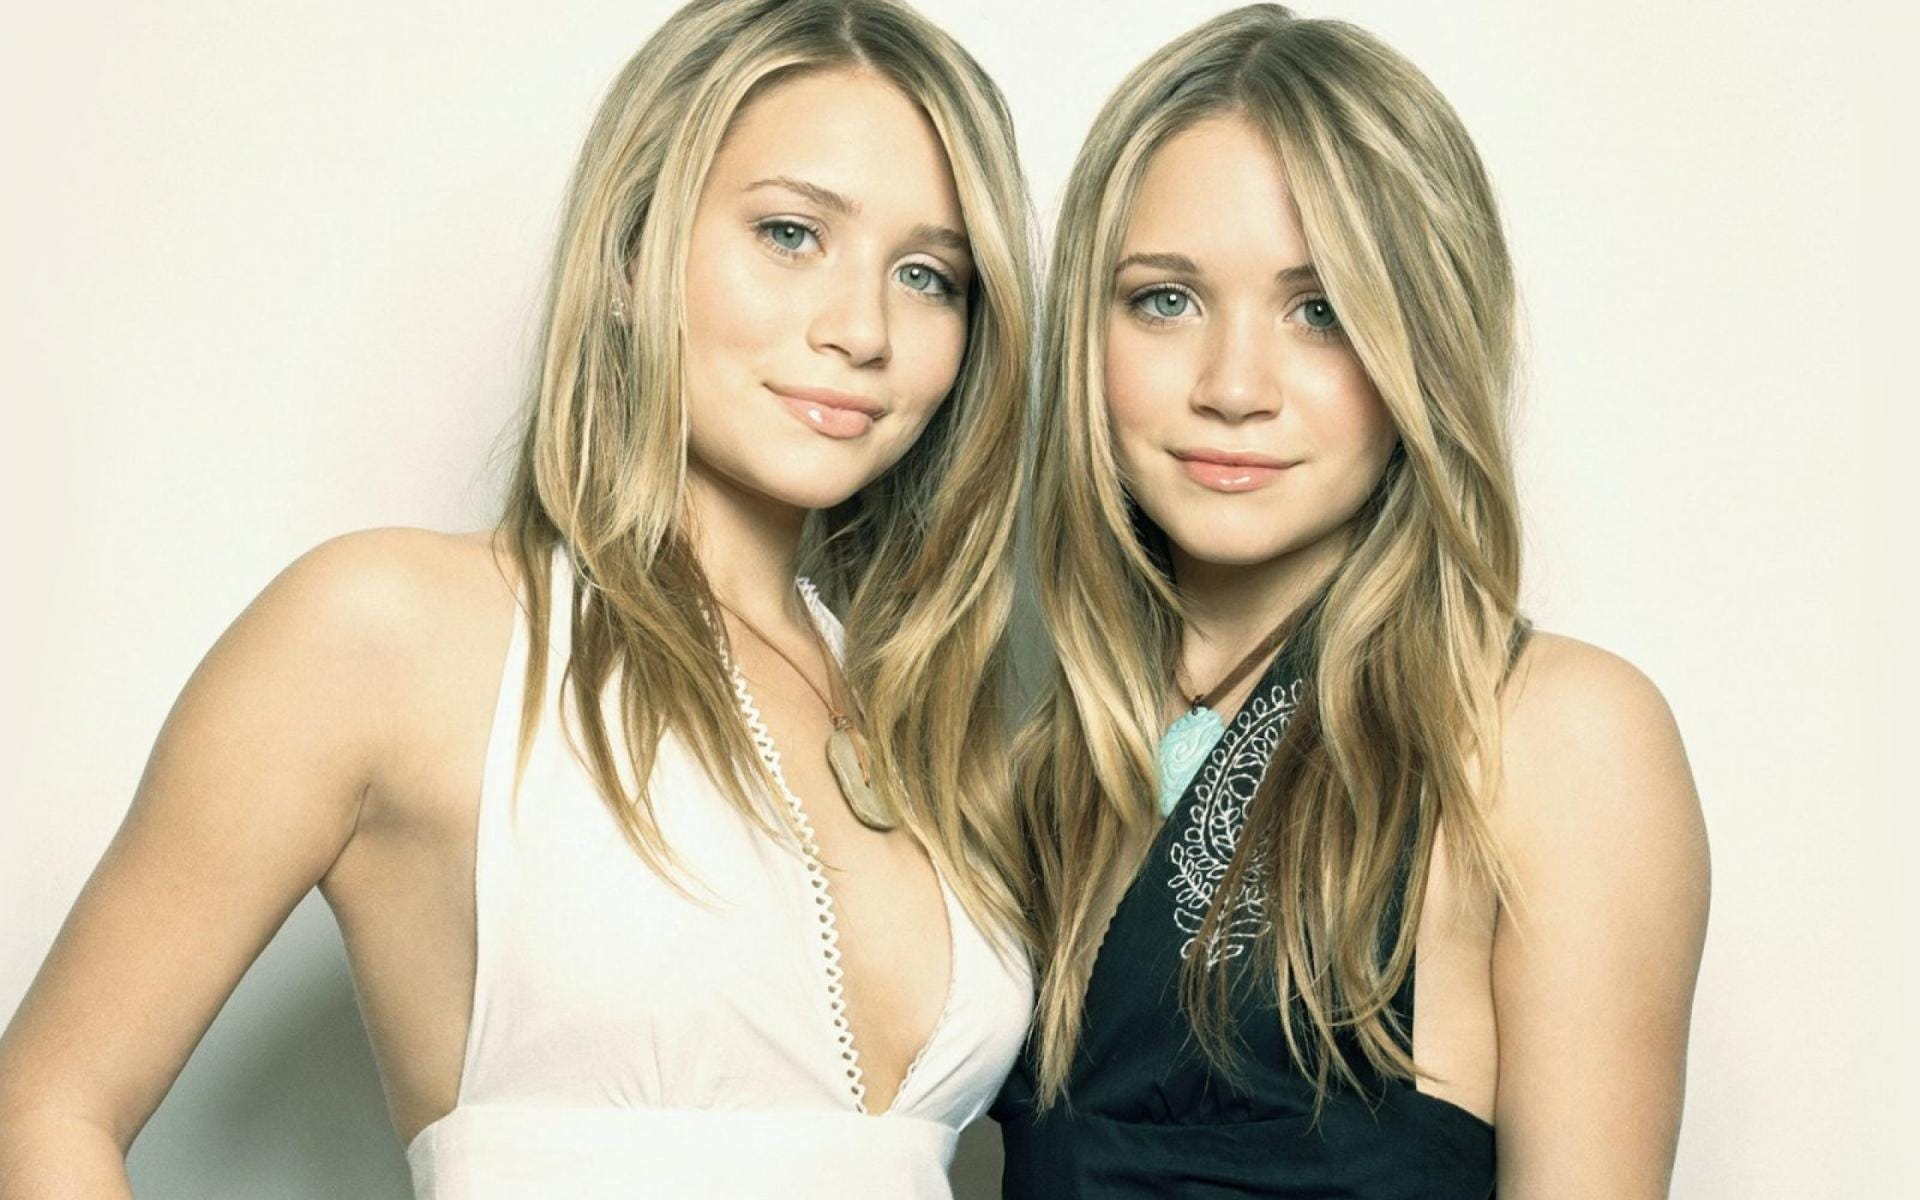 Olsen twins jerk off